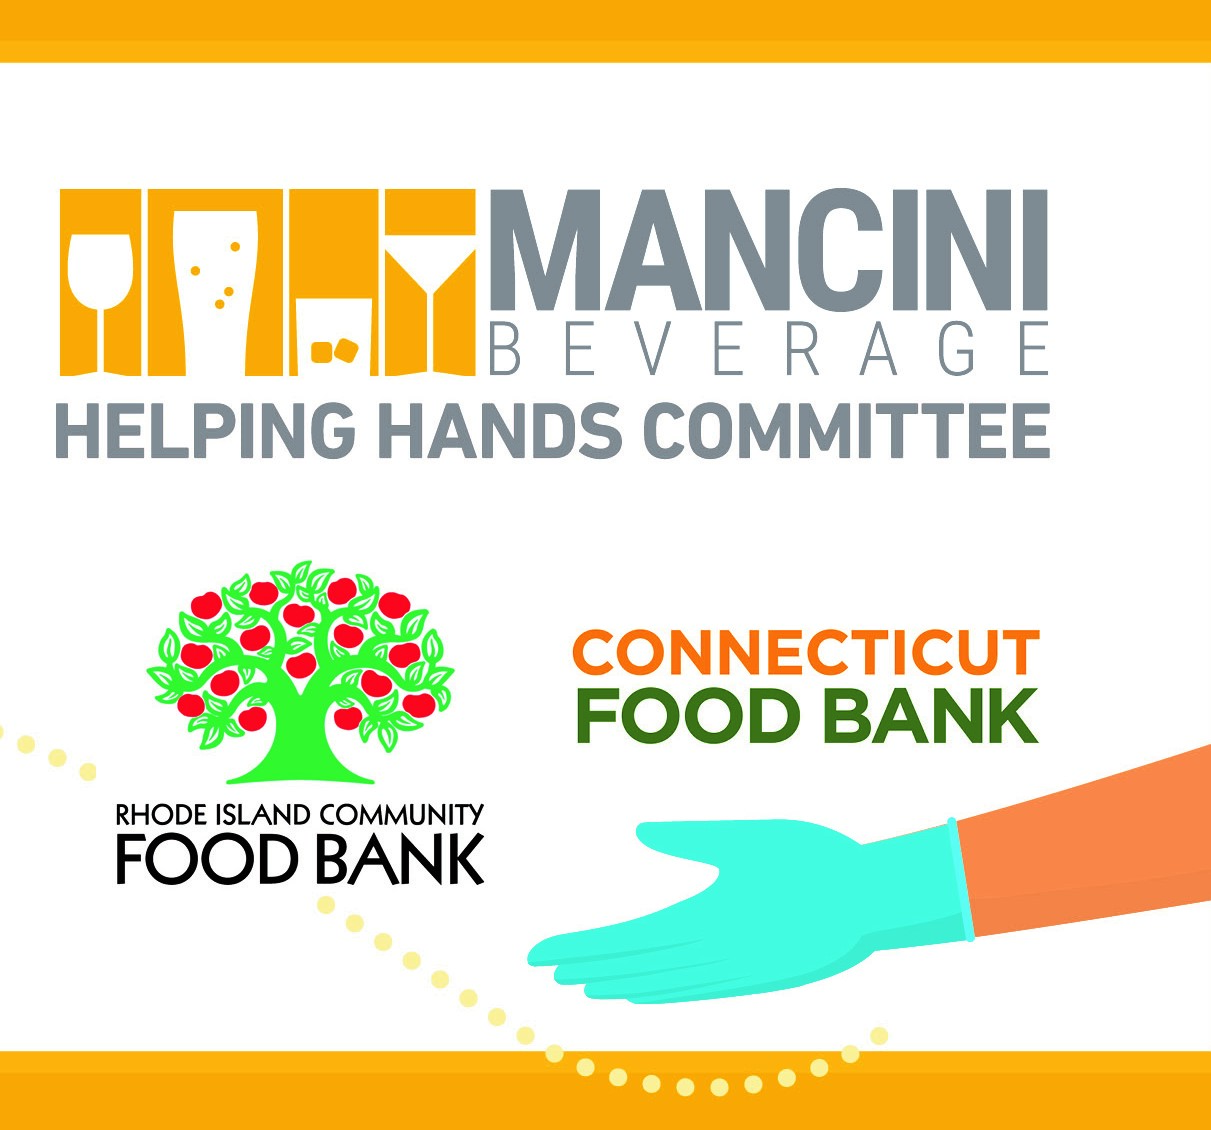 Mancini Beverage Raises Funds for State Food Banks